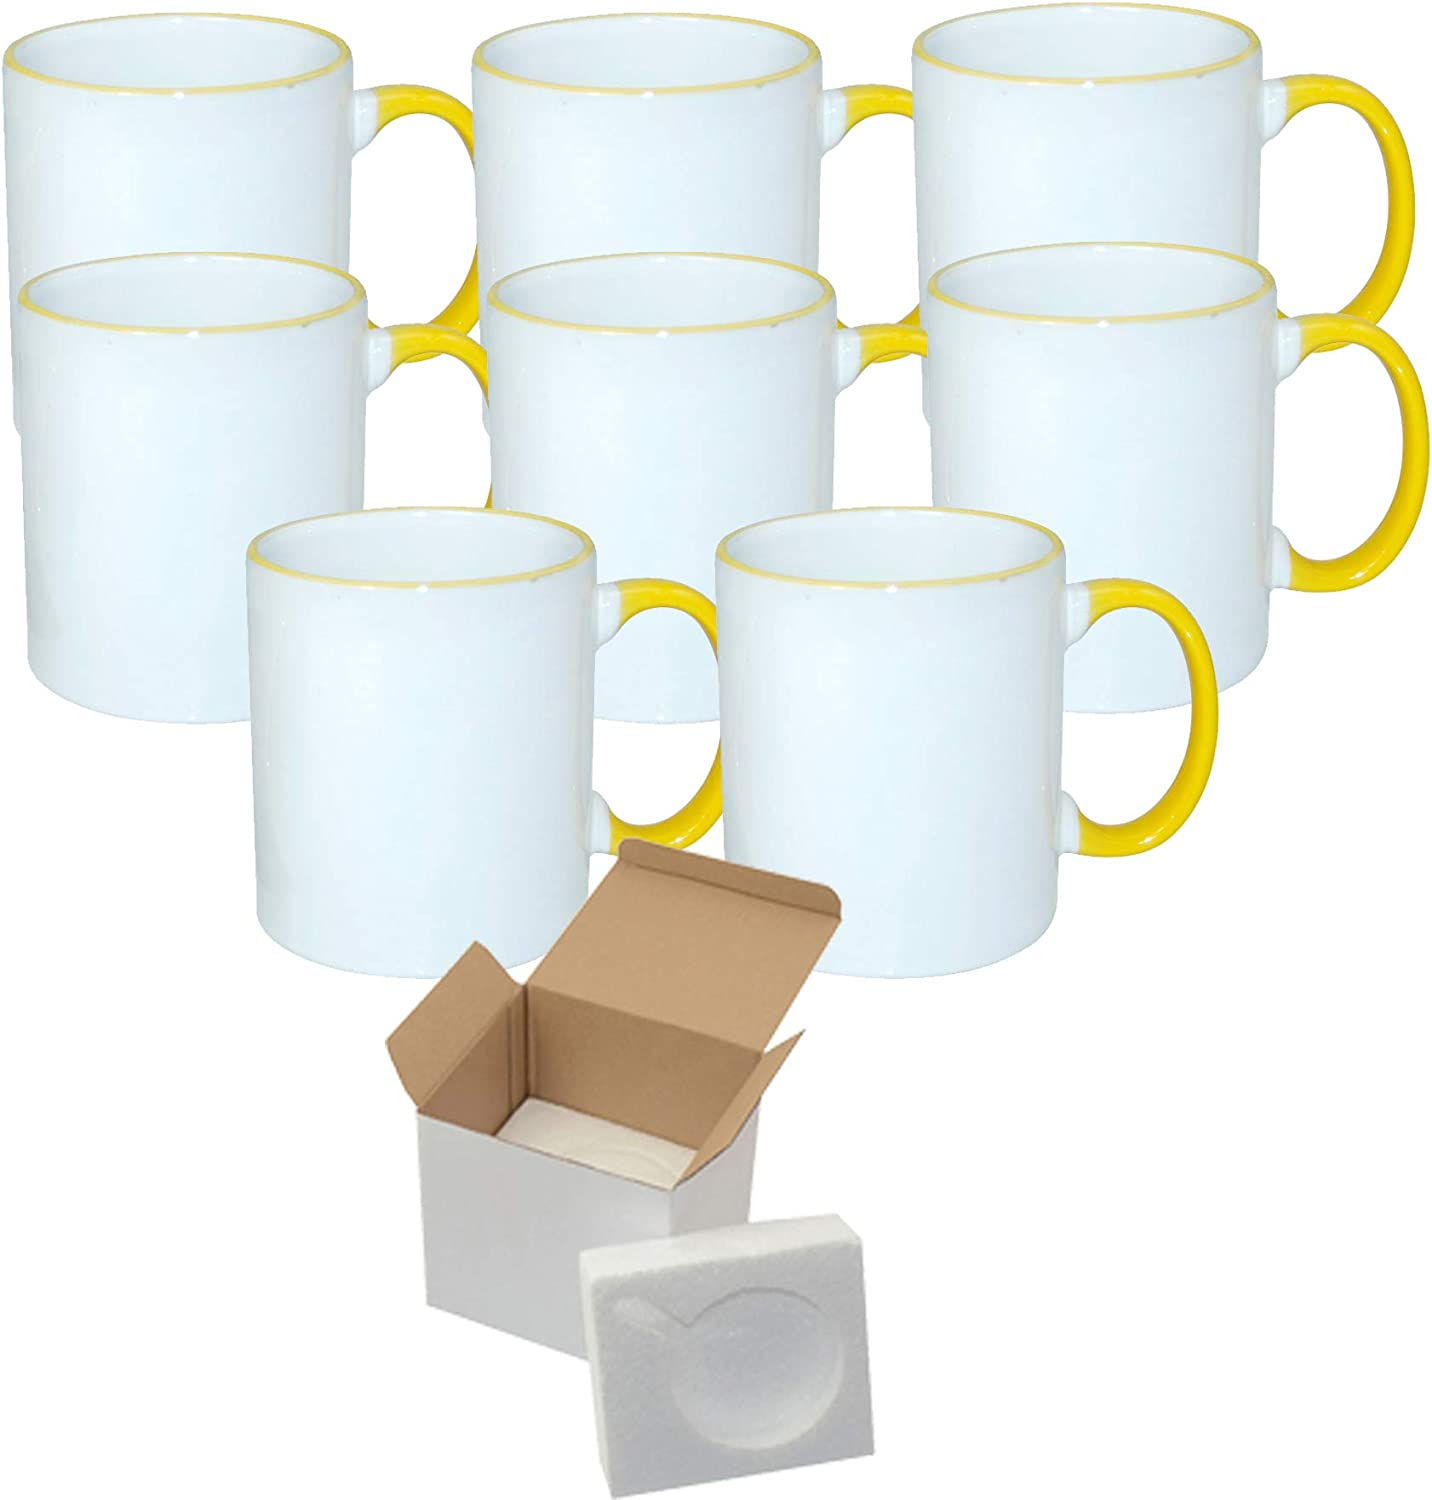 Special price for a limited time Set of Sale Special Price 8 11 oz. Ceramic Handle- - Sublimation YELLOW Rim Mugs